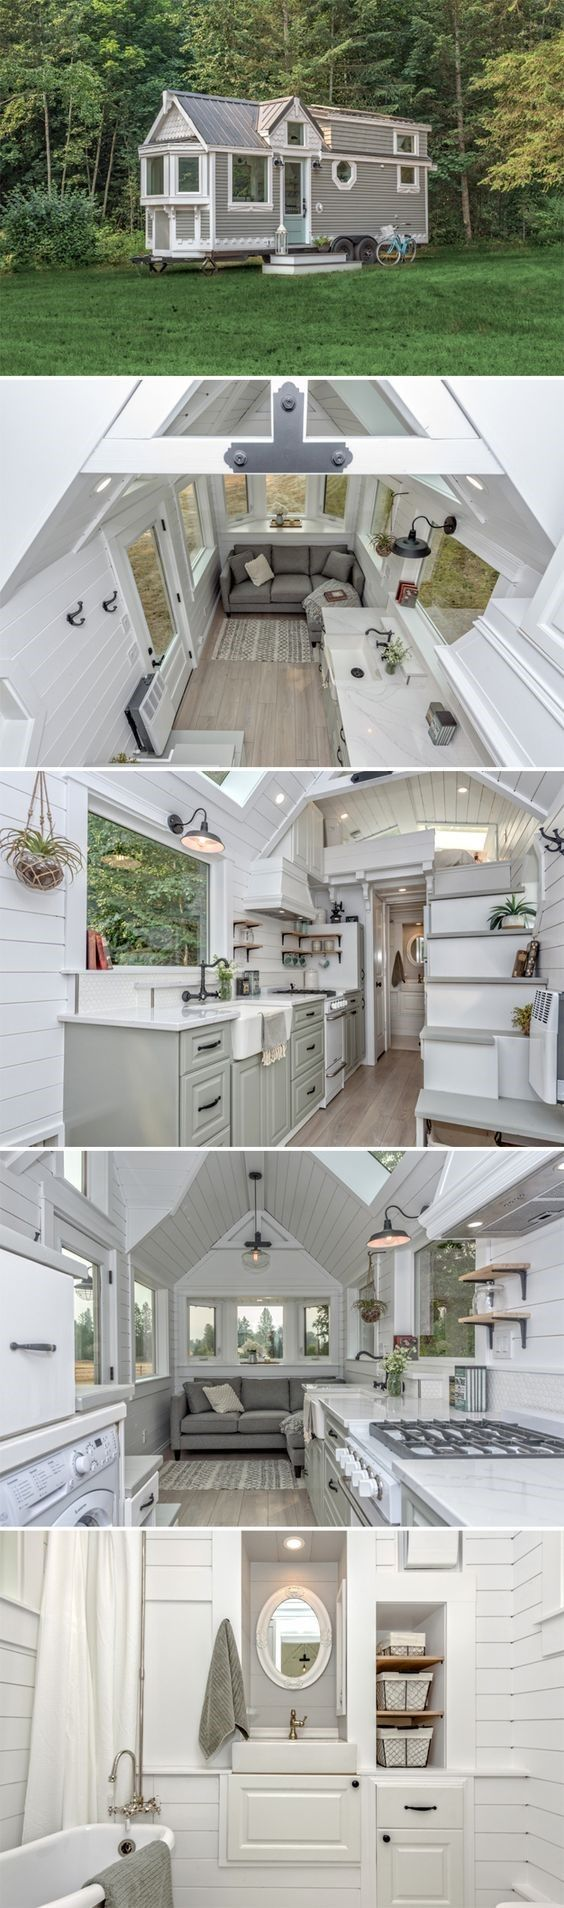 Shed Plans - The Heritage is the debut tiny house built by Oliver Stankiewicz and Cera Bollo at Summit Tiny Homes, located in Armstrong, British Columbia. - Now You Can Build ANY Shed In A Weekend Even If You've Zero Woodworking Experience!